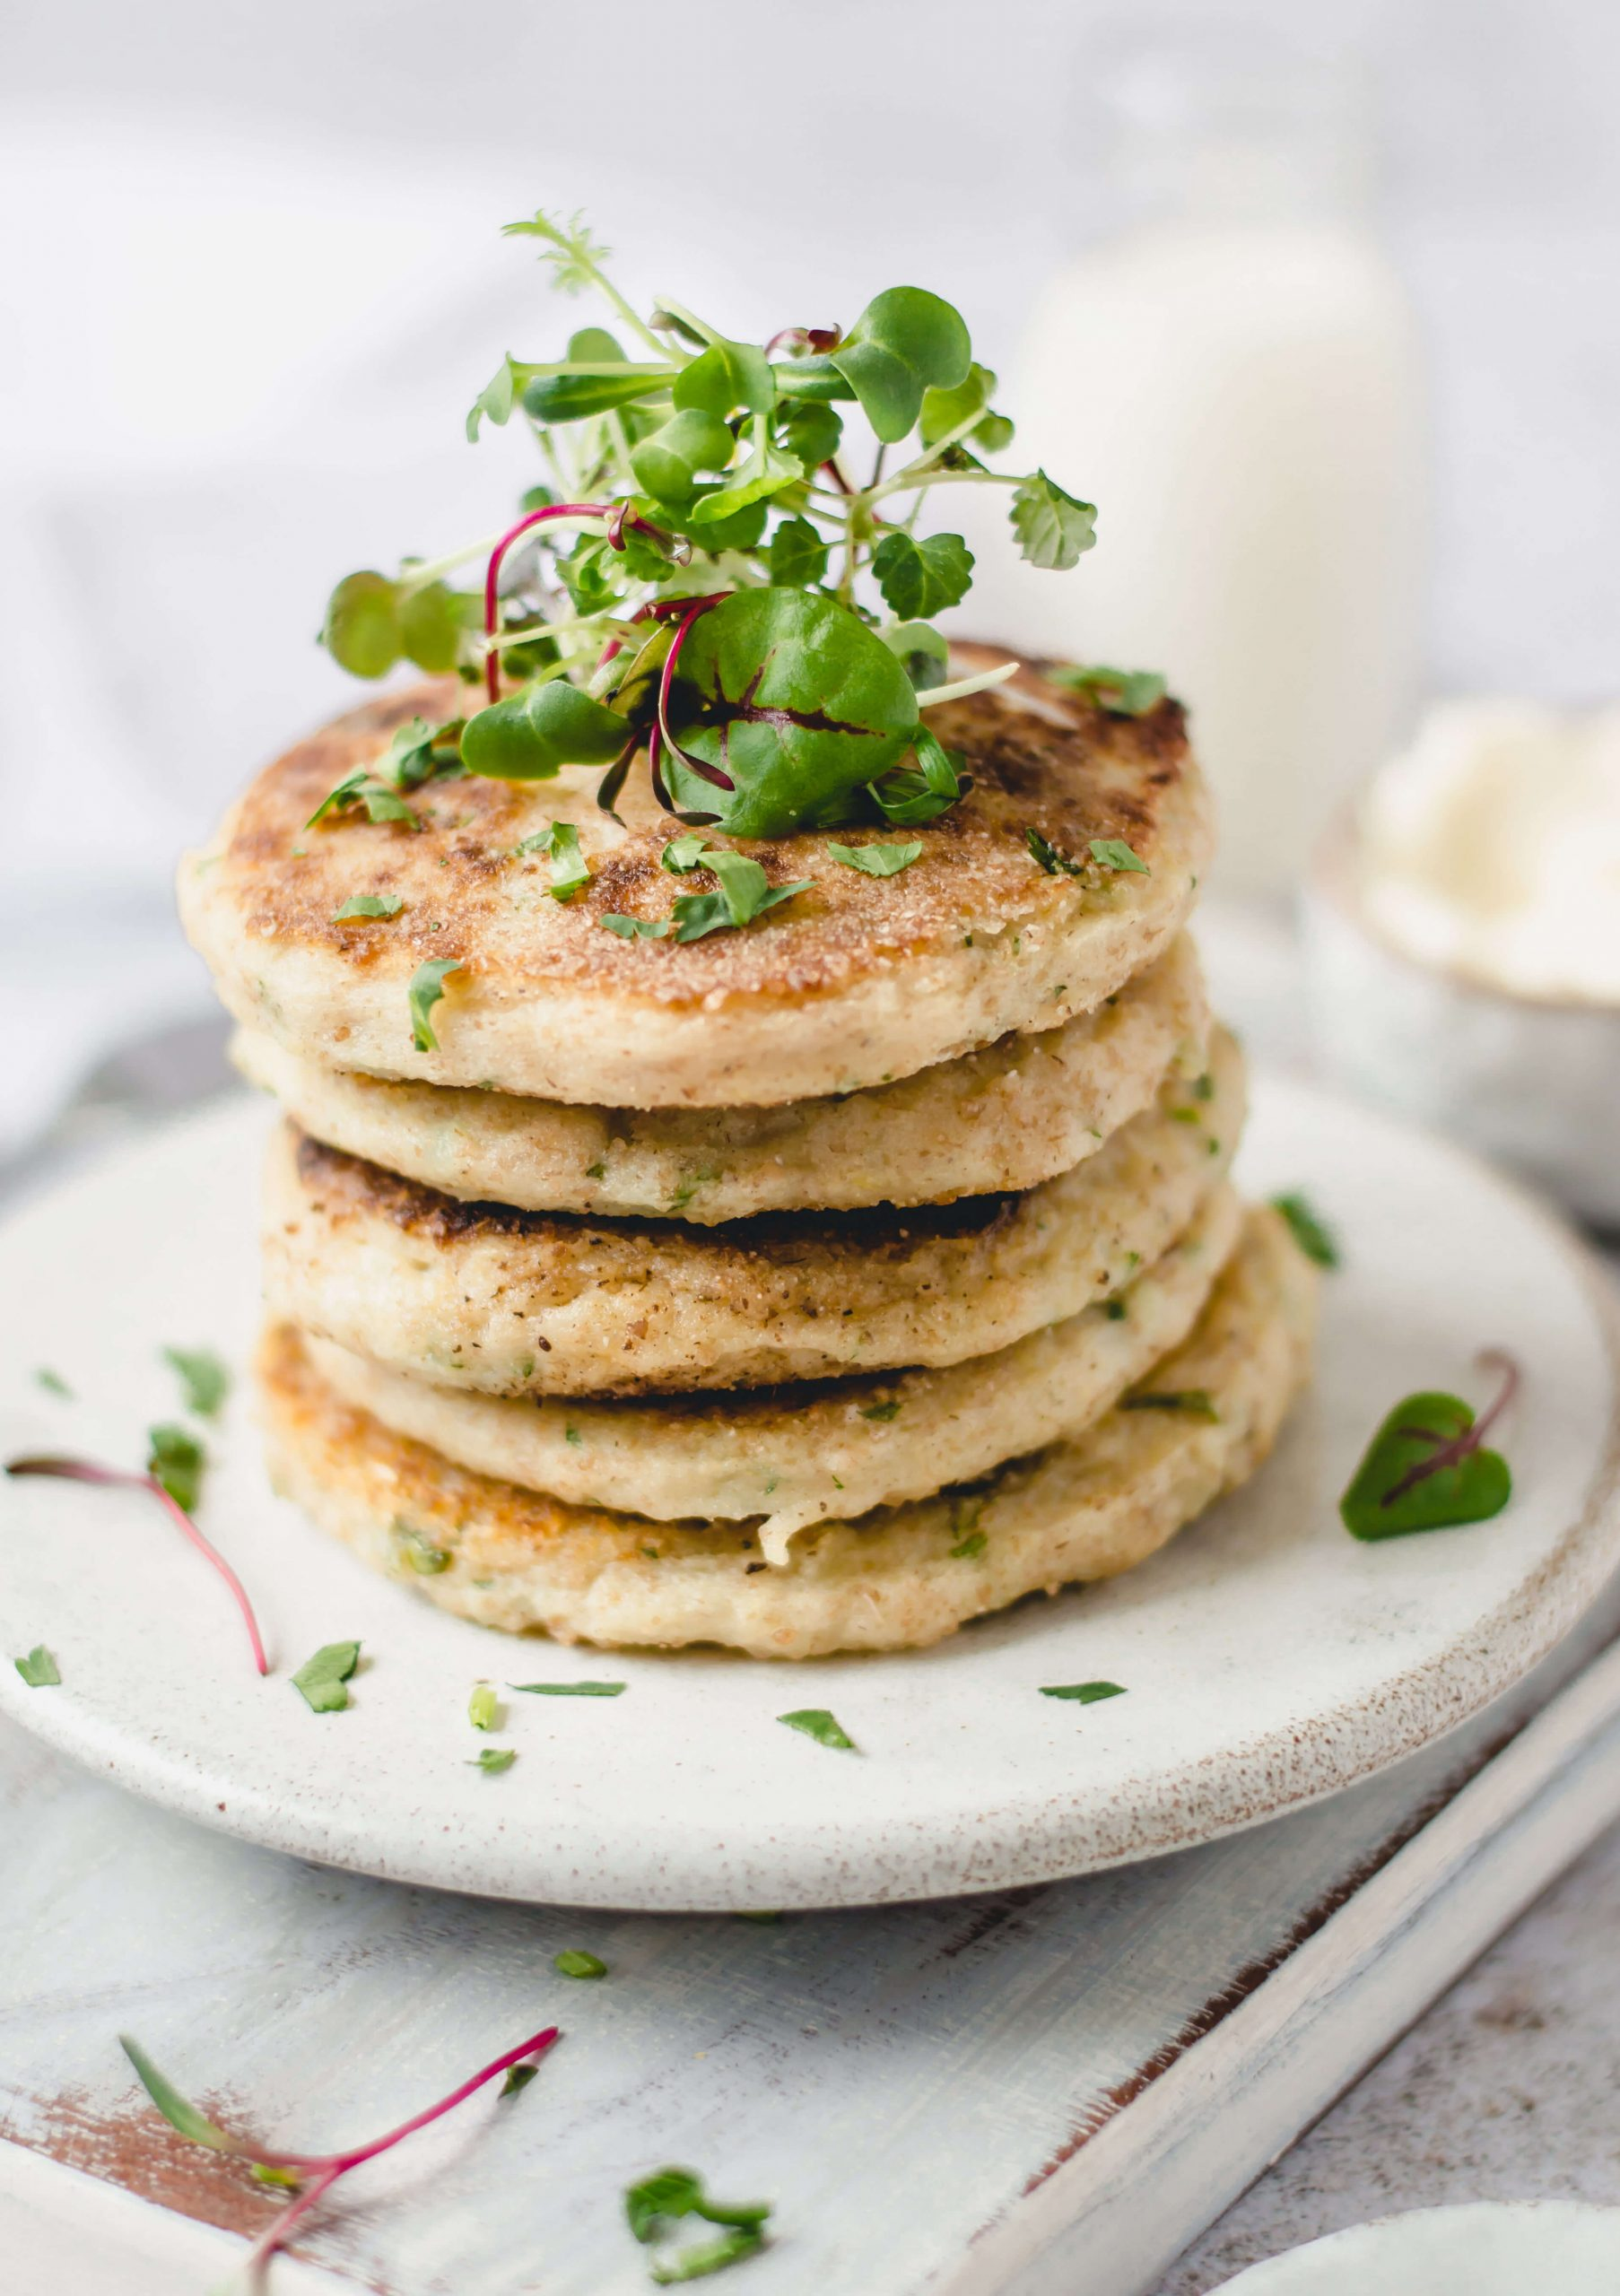 Vegan potato cakes stack garnished with herbs